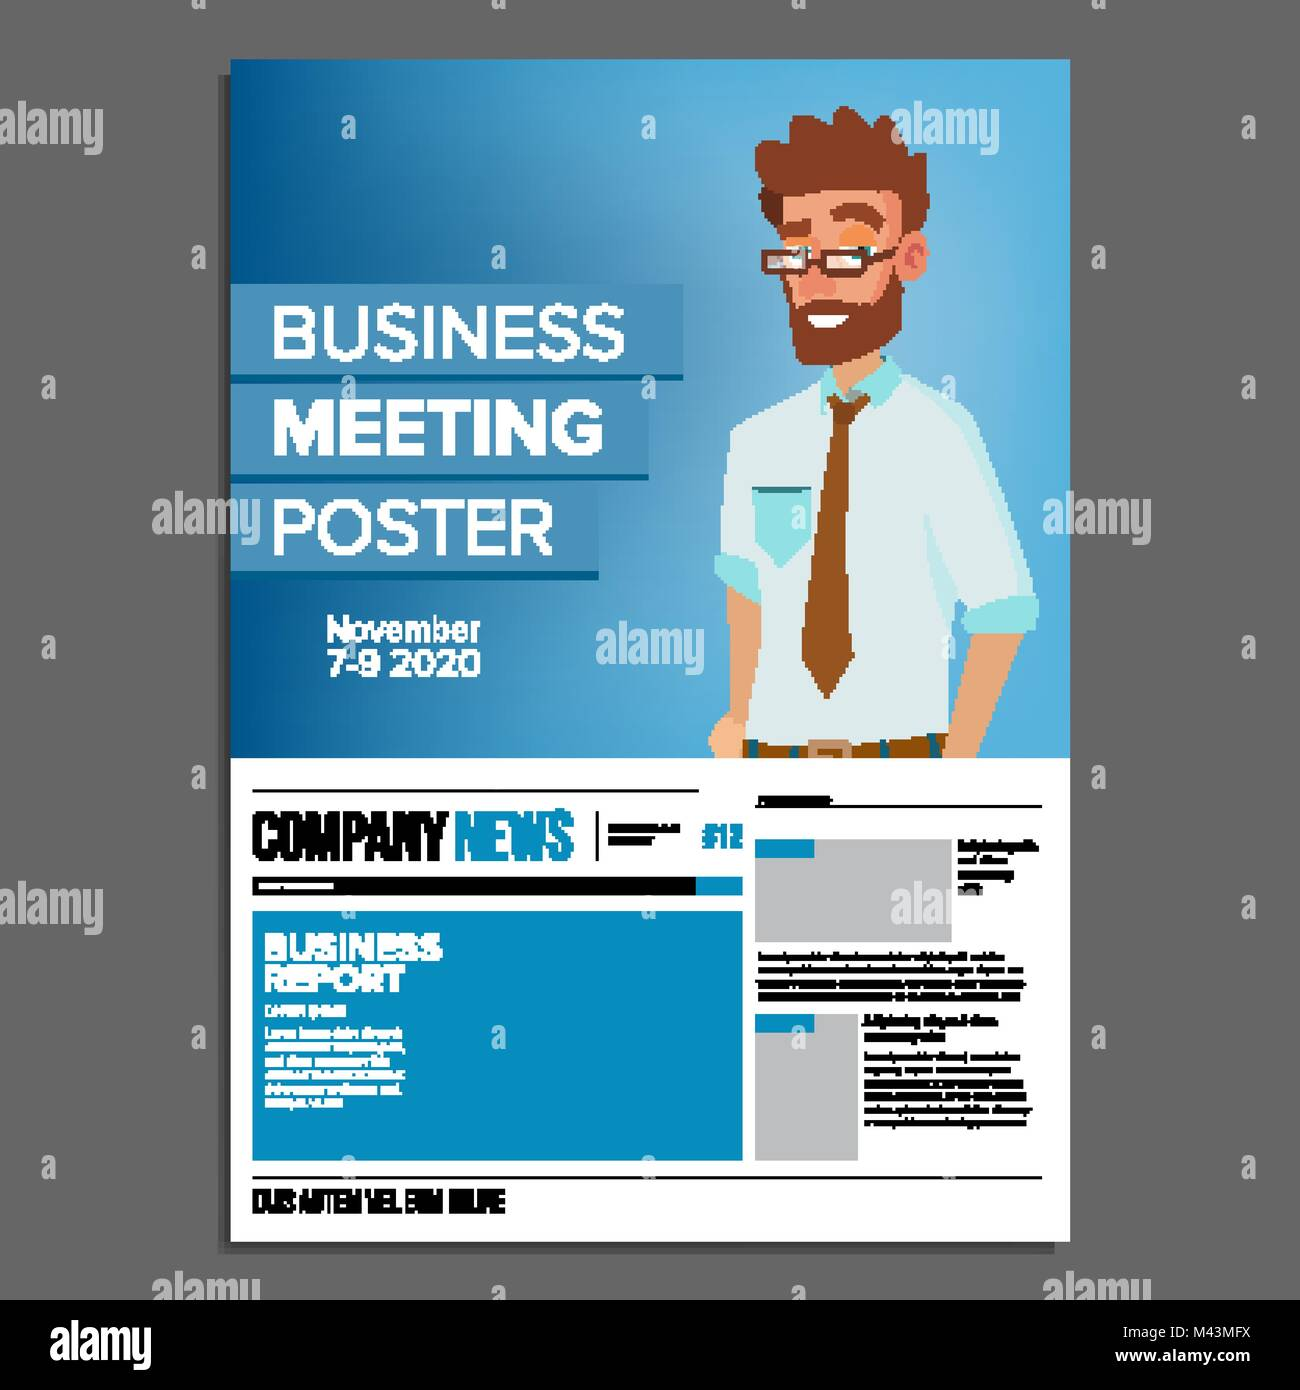 Business meeting poster vector businessman invitation for stock business meeting poster vector businessman invitation for conference forum brainstorming cover annual report a4 size flat cartoon illustration stopboris Image collections